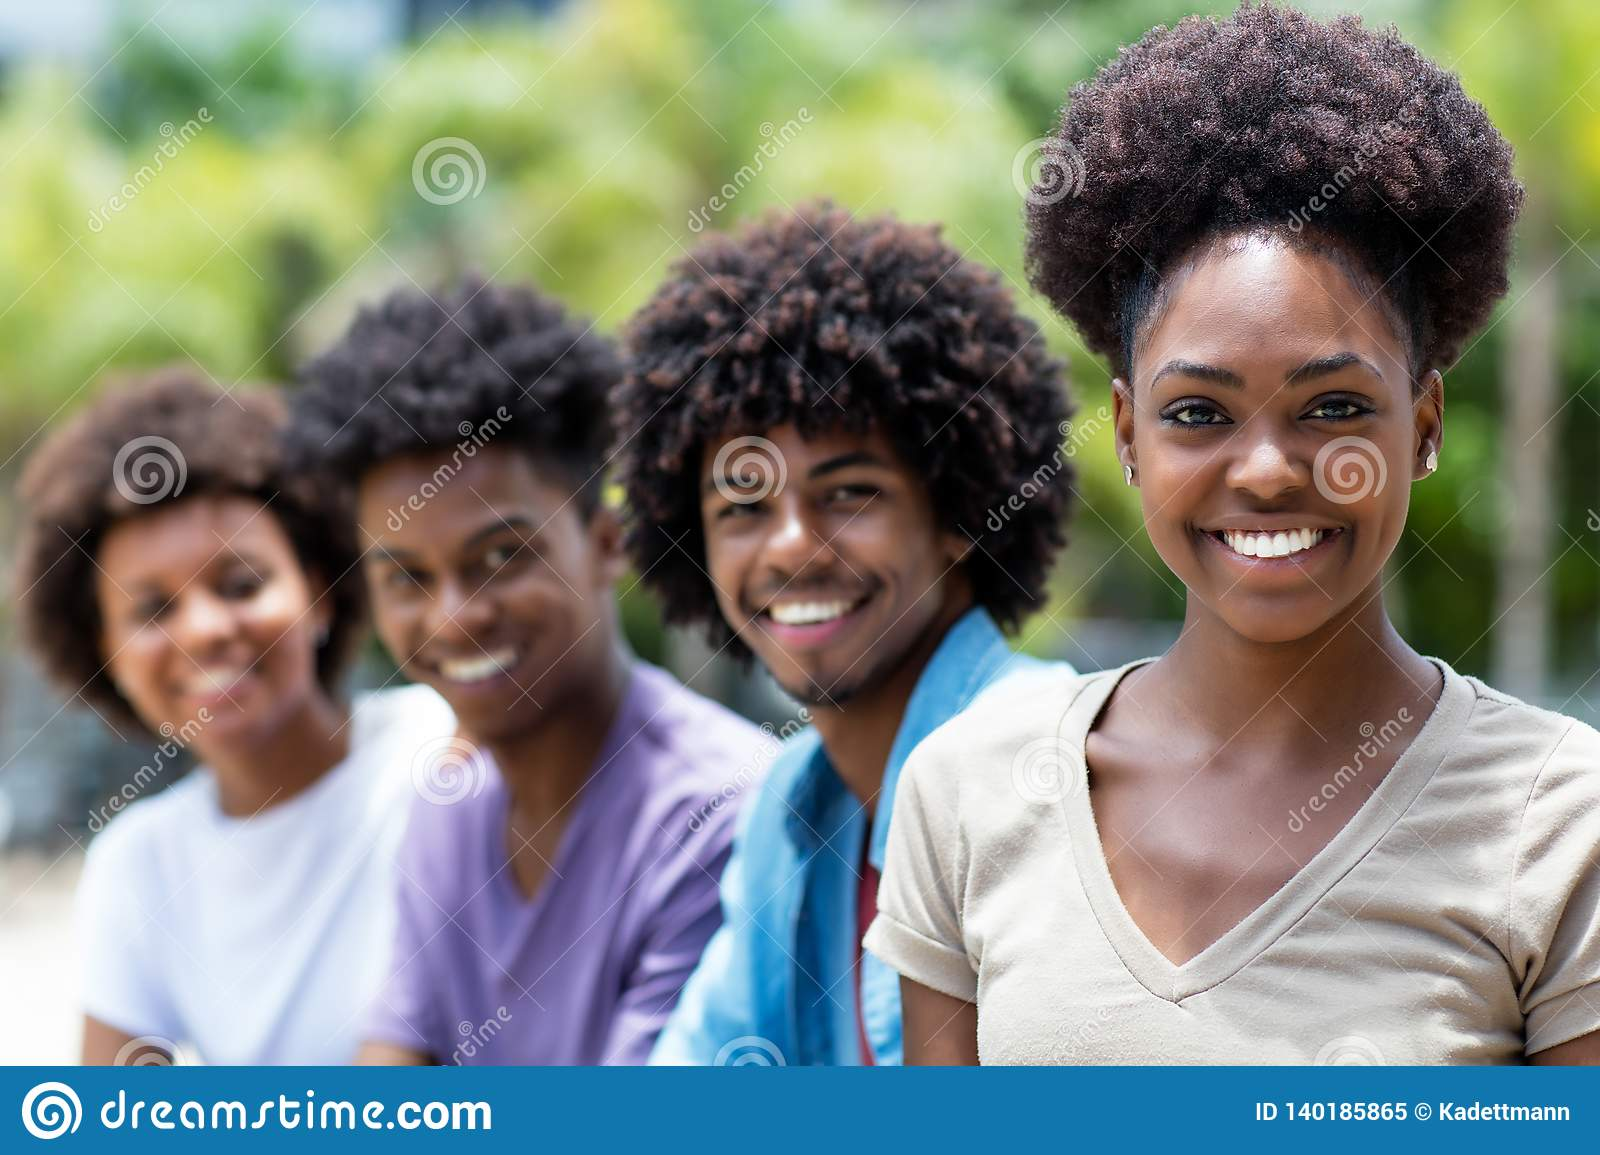 Laughing african american woman with group of young adults in line